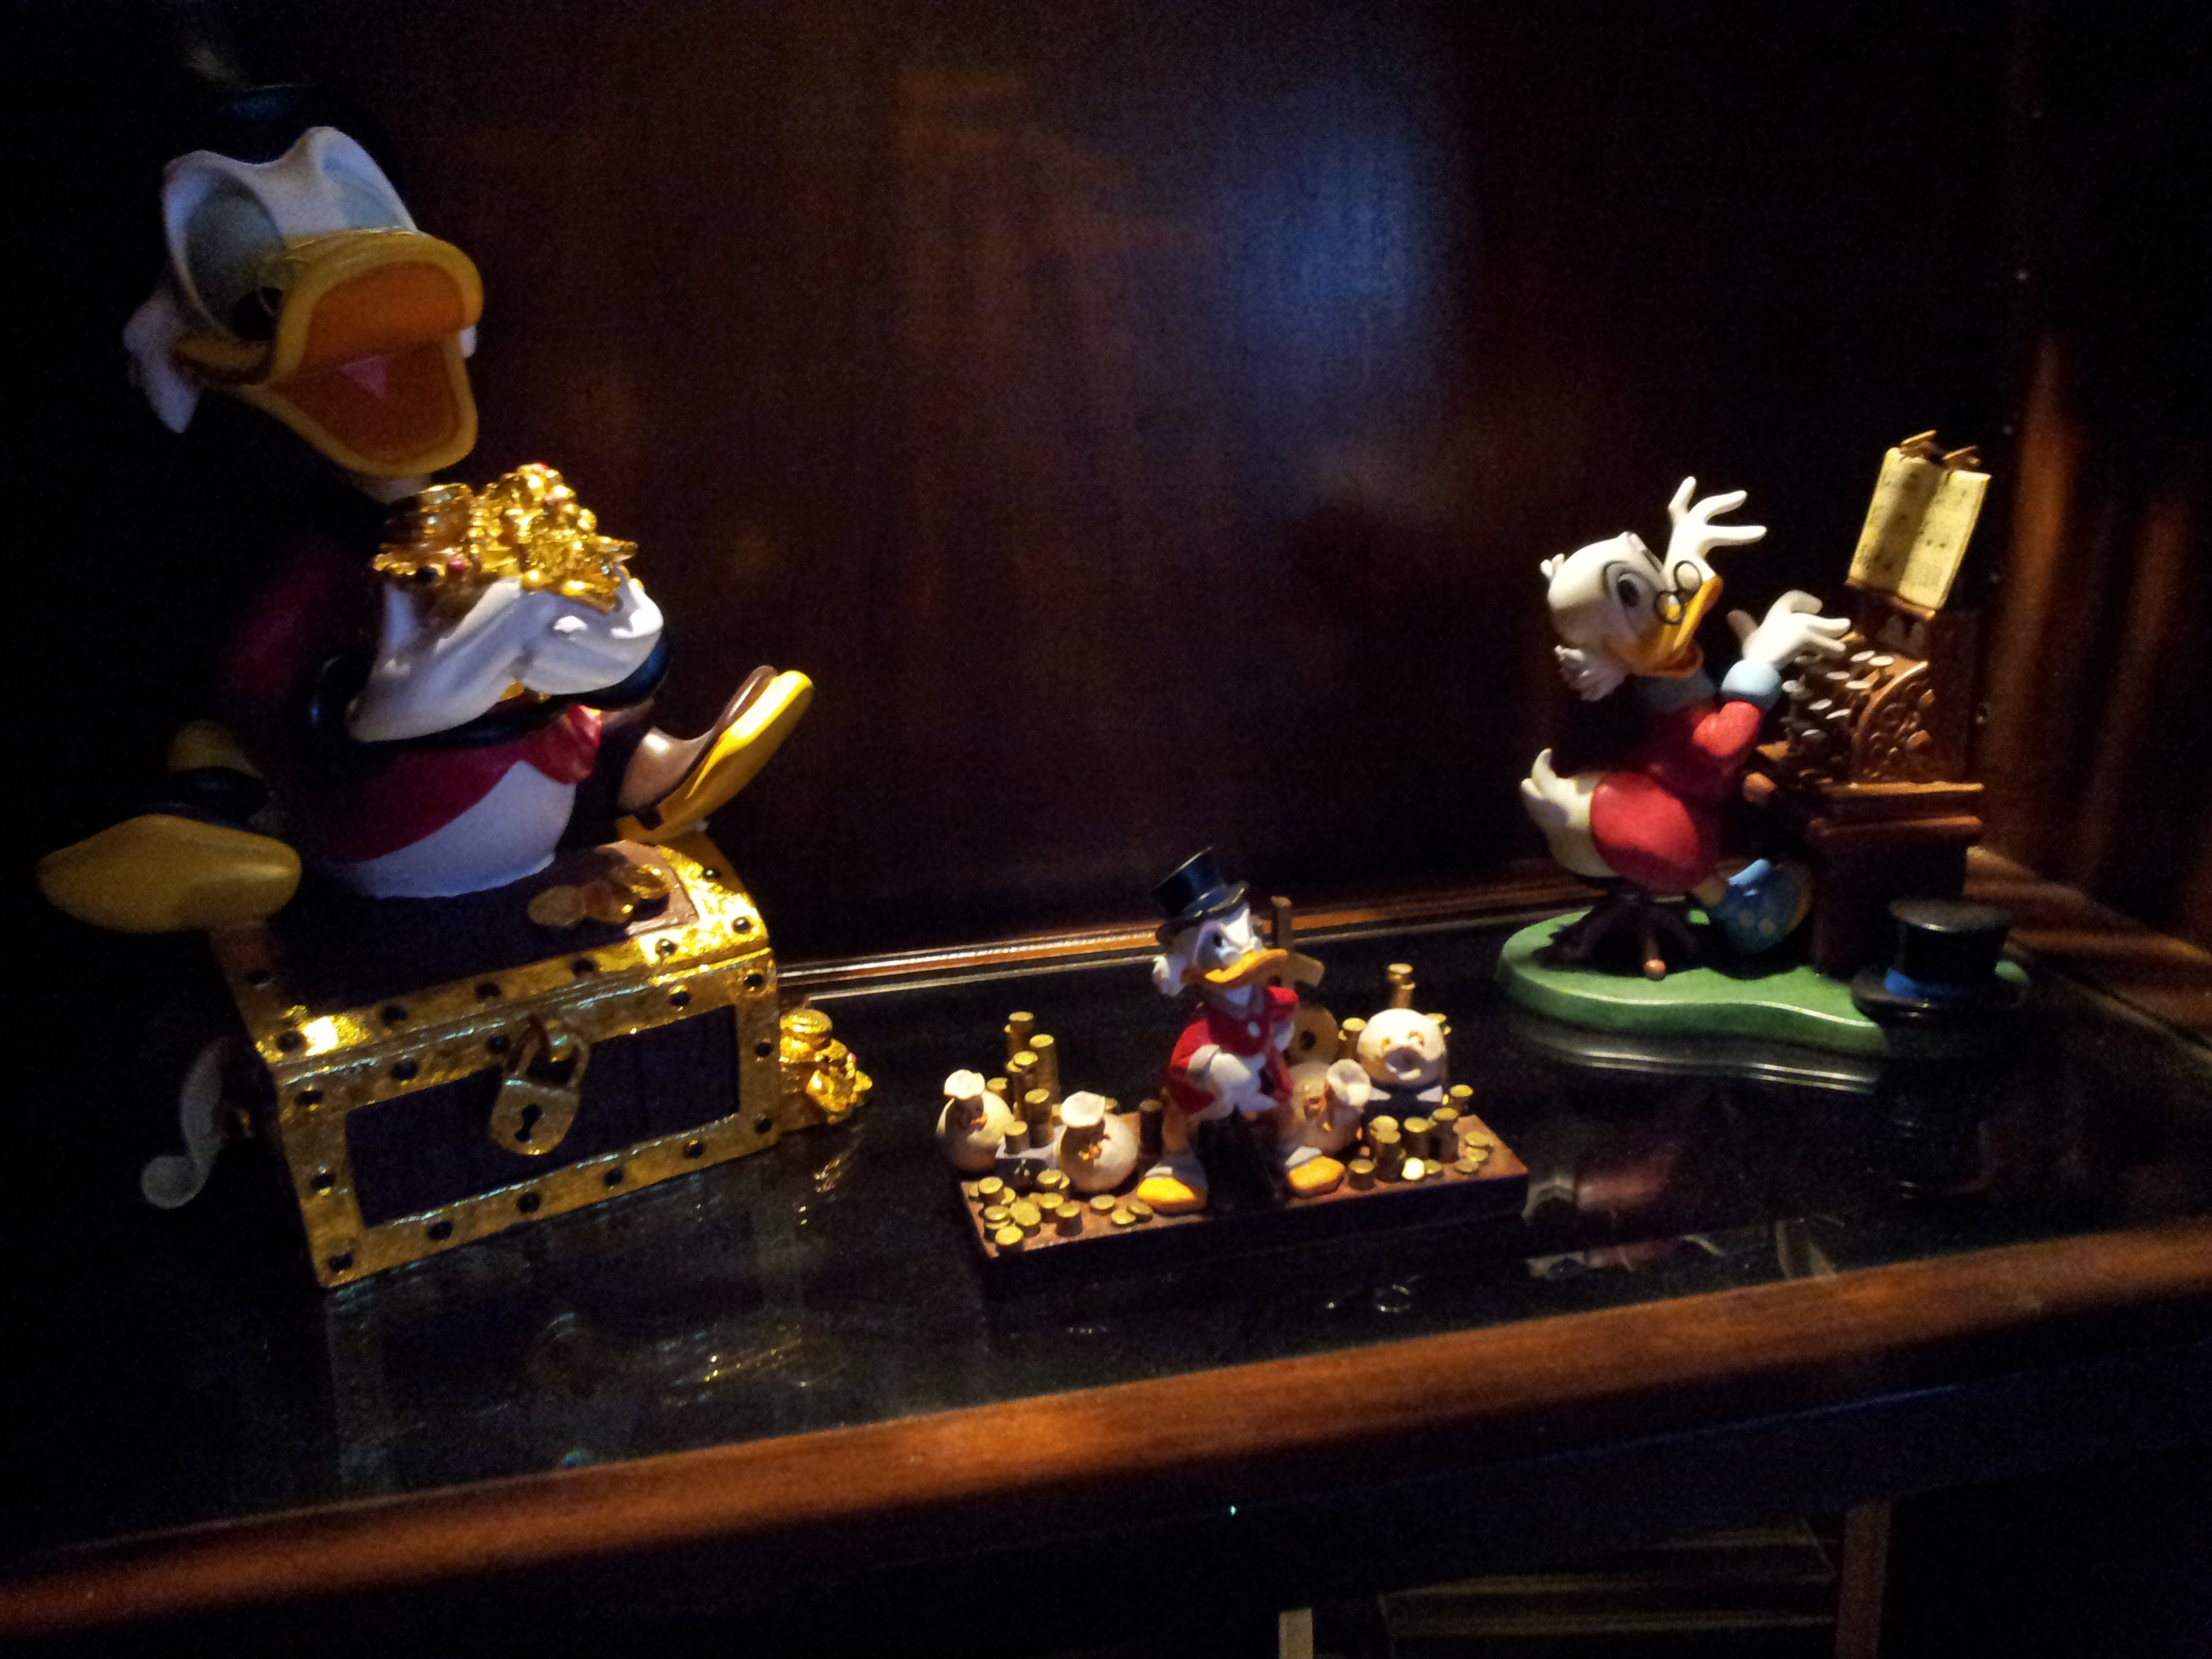 Joshua Kennon Scrooge McDuck Collection - February 12 2013 Part 3